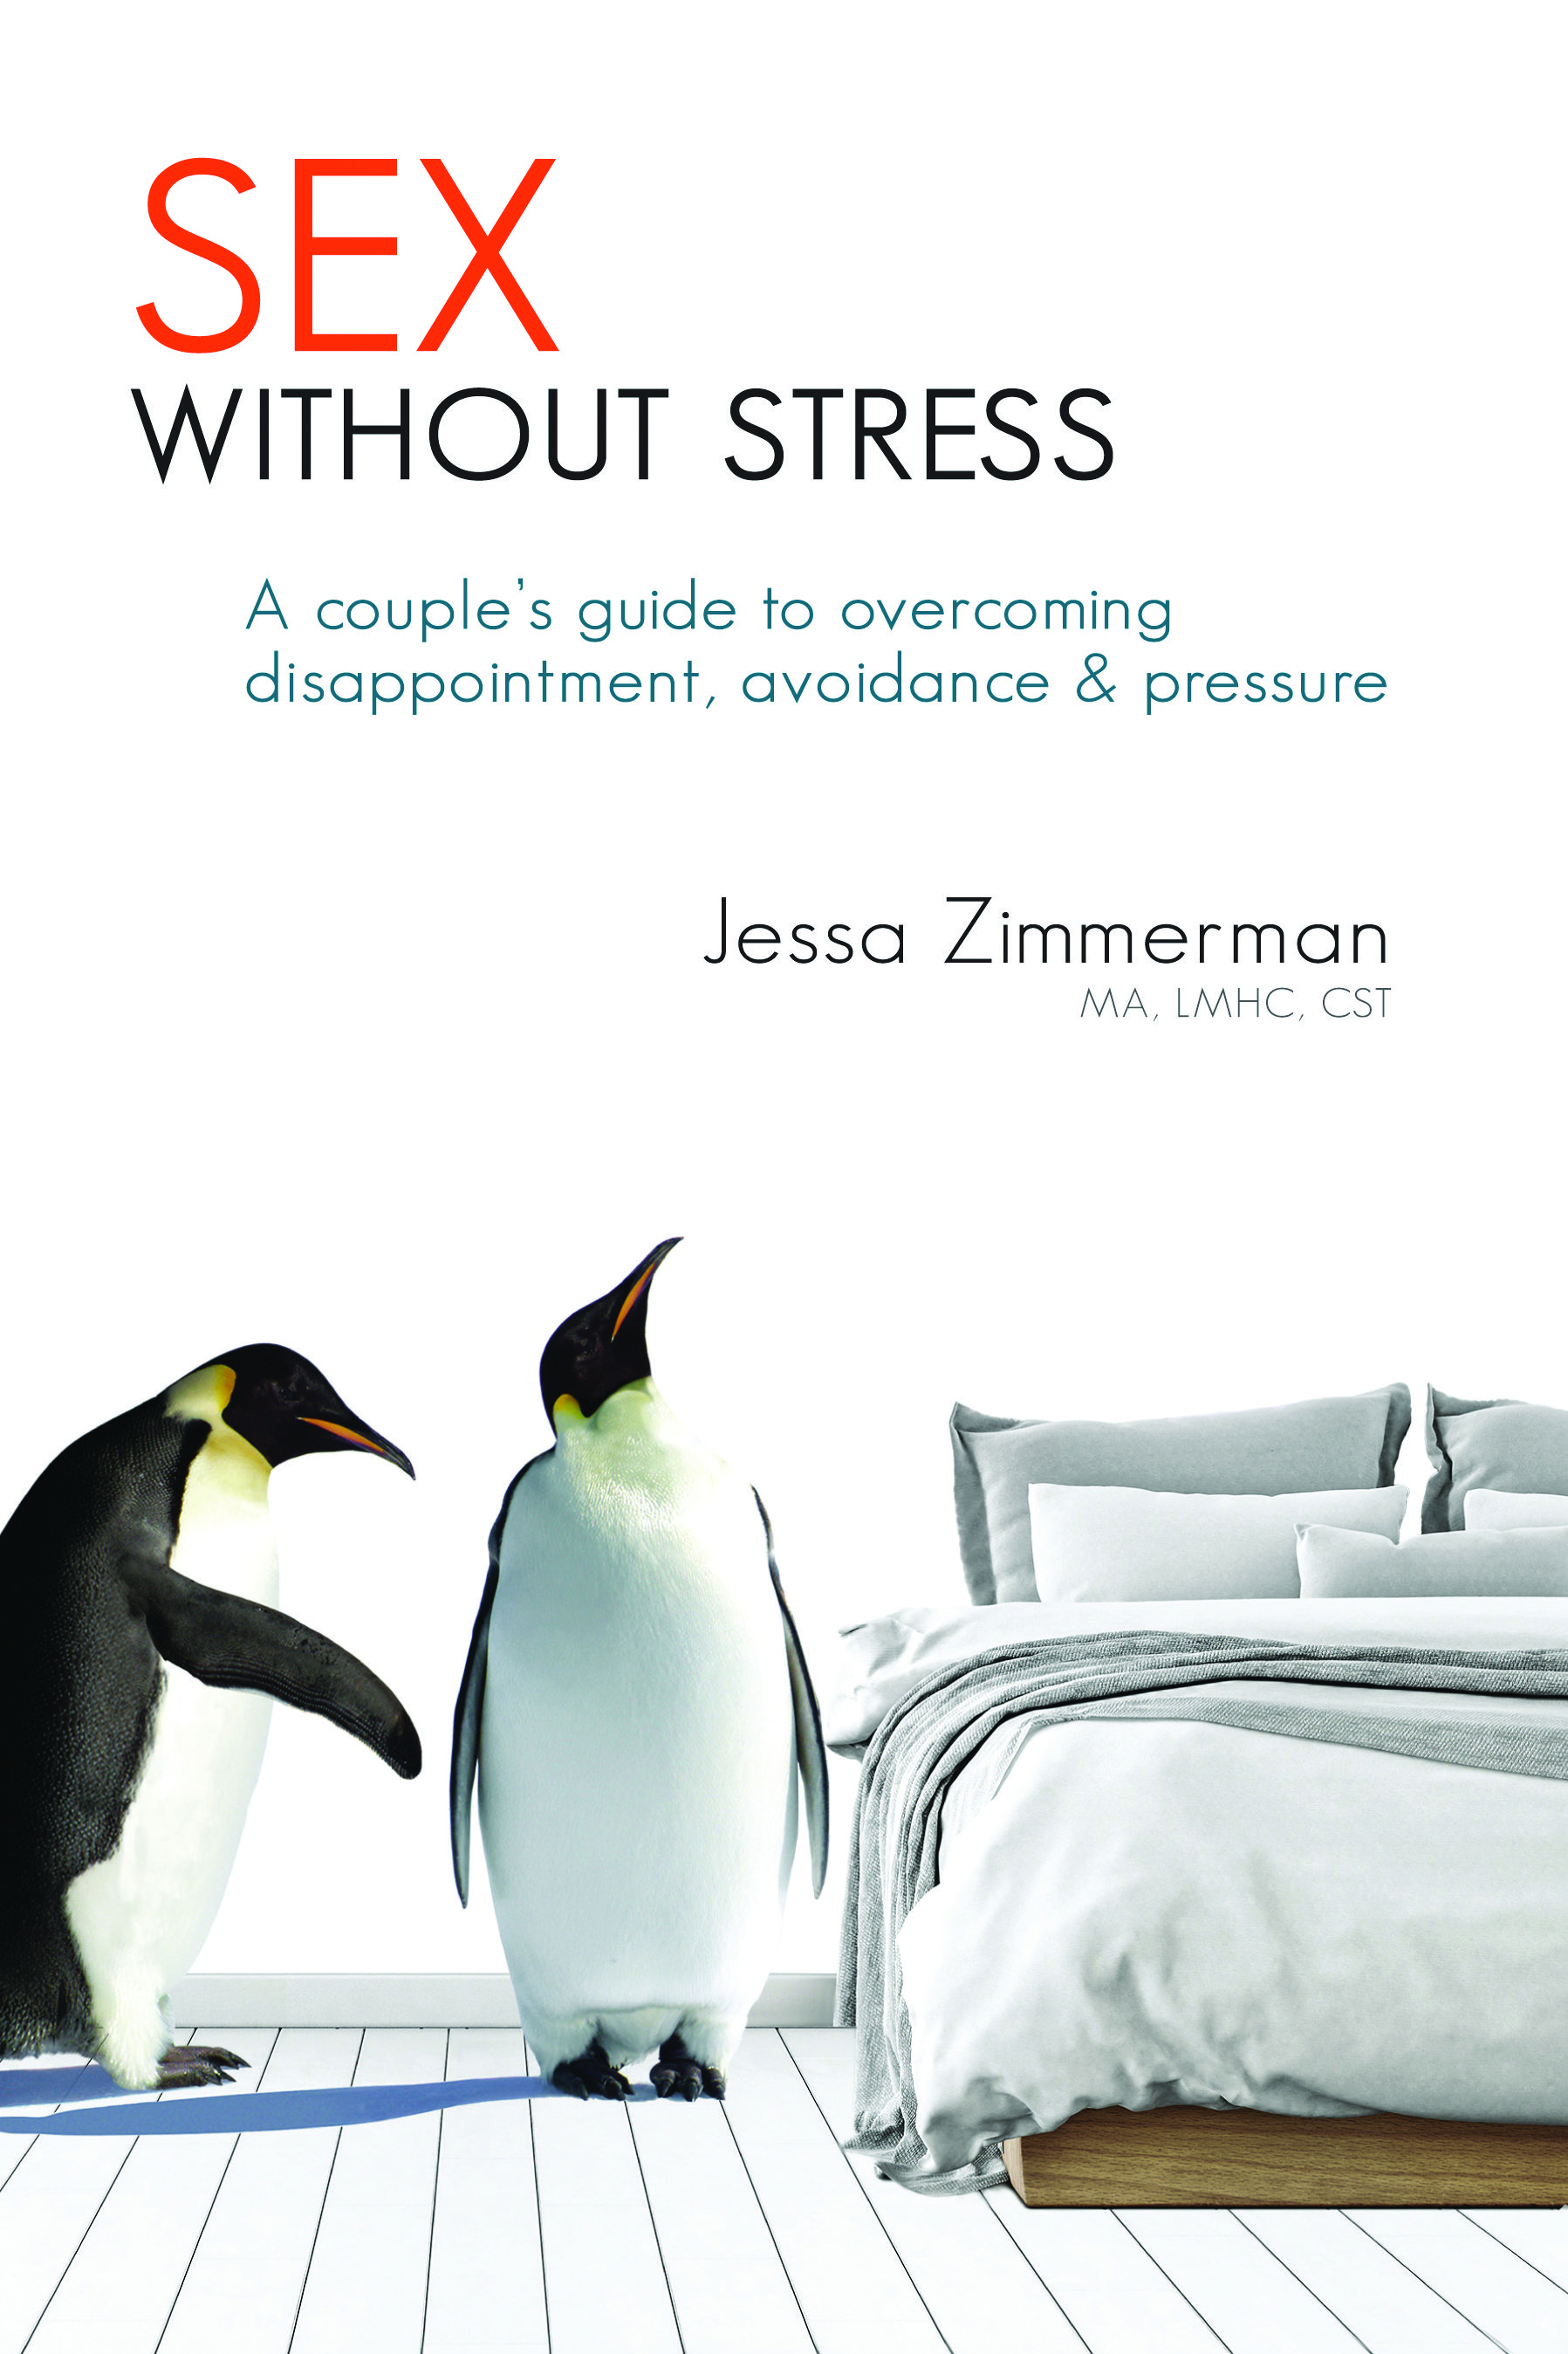 Seattle Sex Therapist's book Sex Without Stress